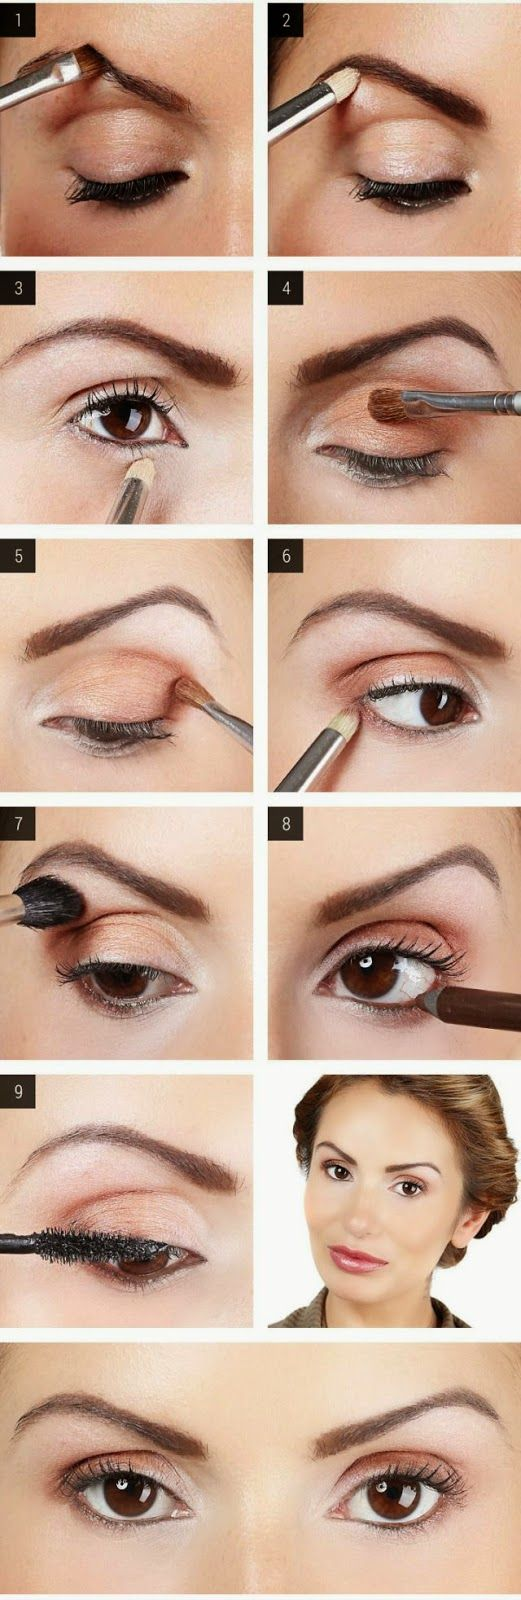 Makeup How-To: Ethereal Eyes                                                                                                                                                                                 More